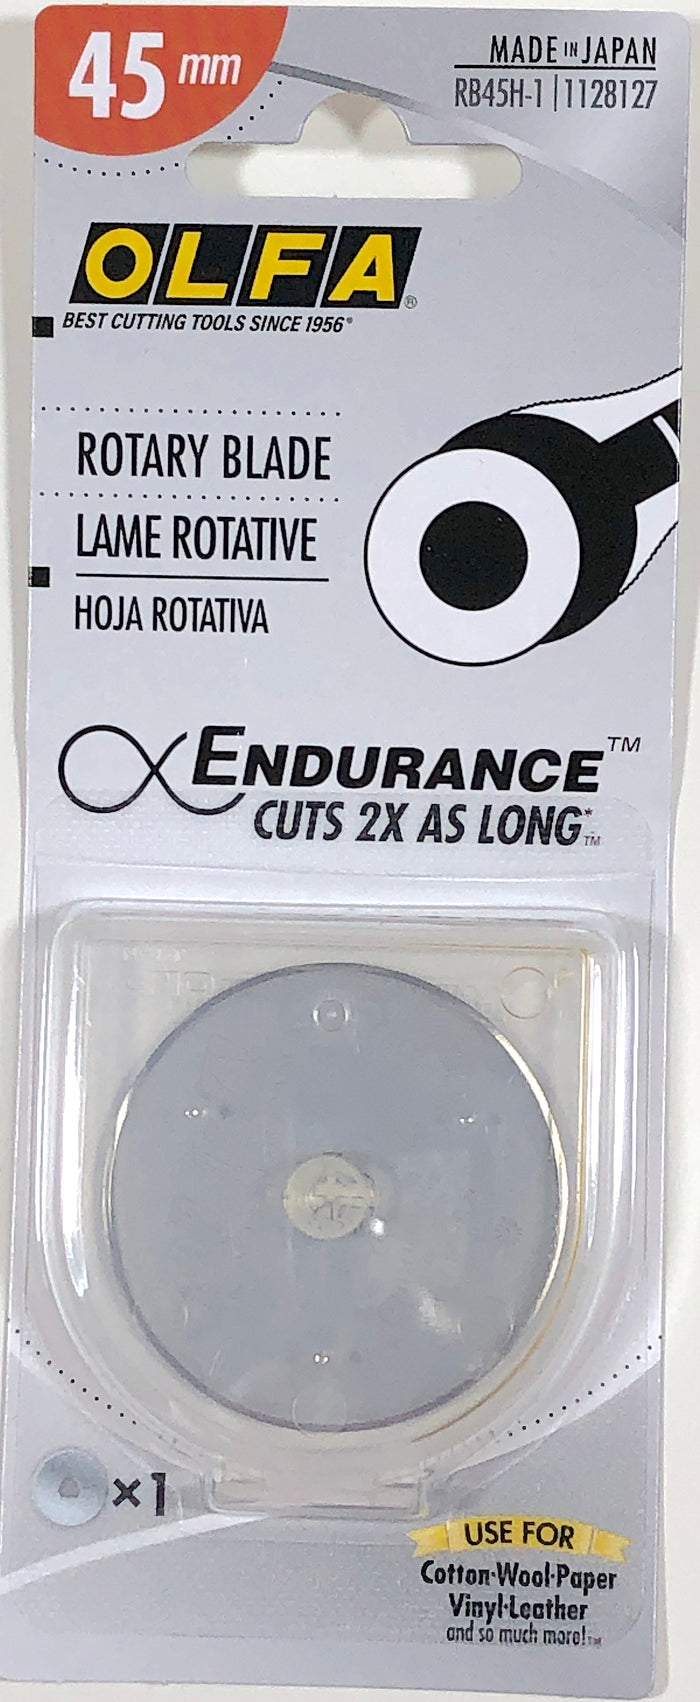 Olfa 45 mm Endurance replacement rotary blade - RB45H-1